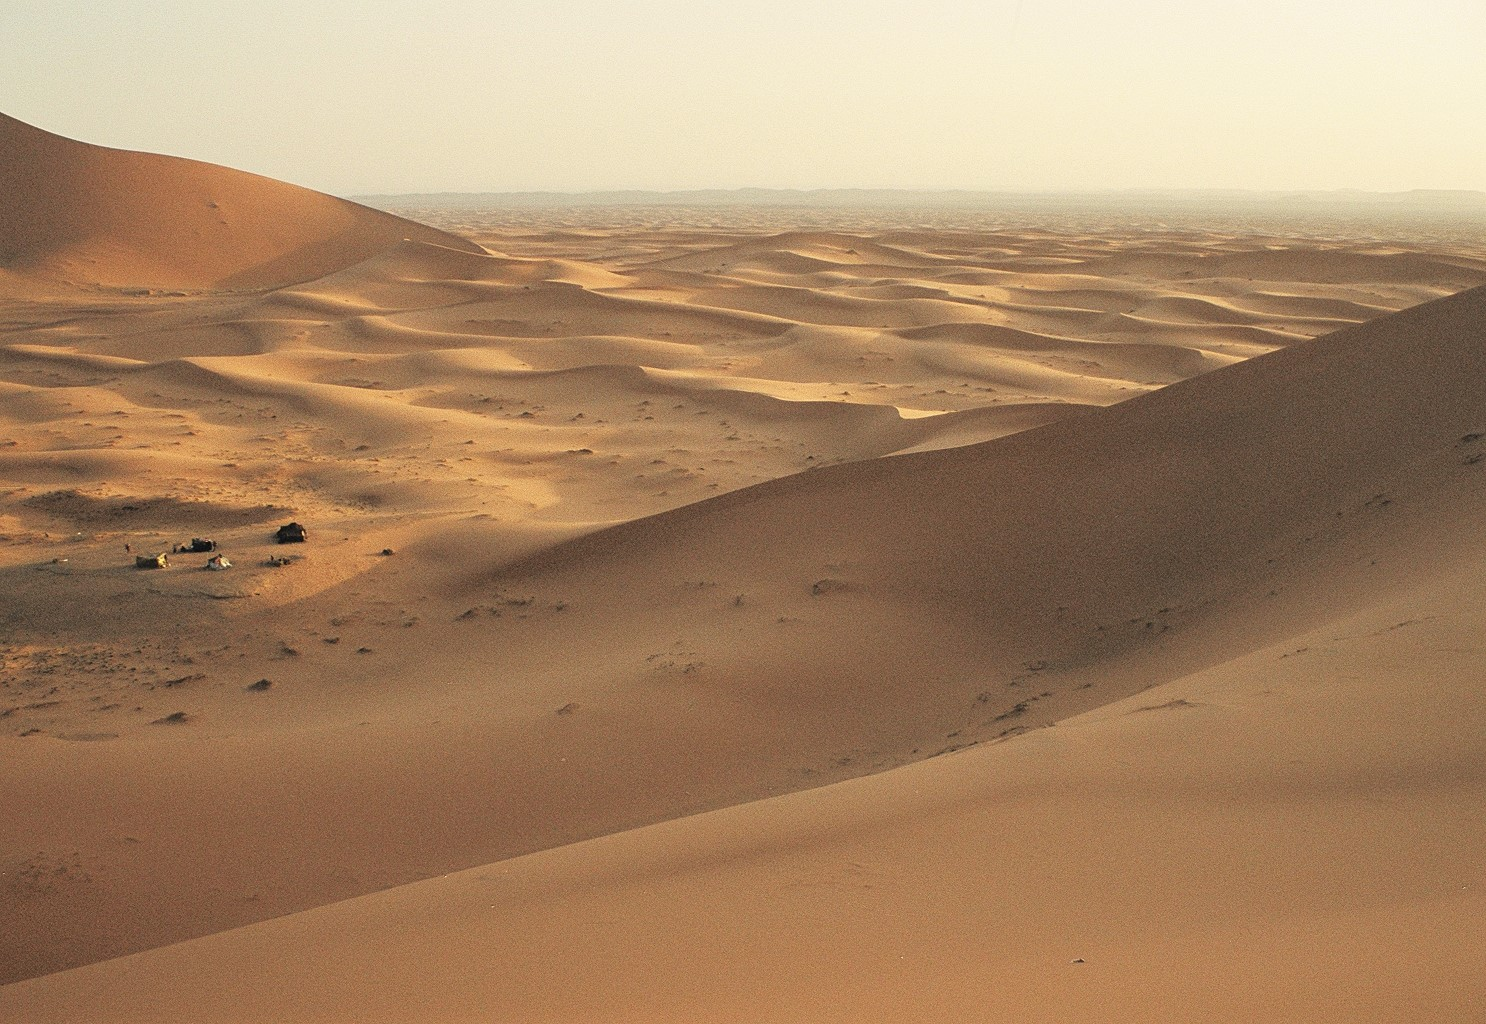 "Erg Chebbi in Morocco. The Sahara was once lush, likely desertified in part by overgrazing. How ""wild"" does that make it?"